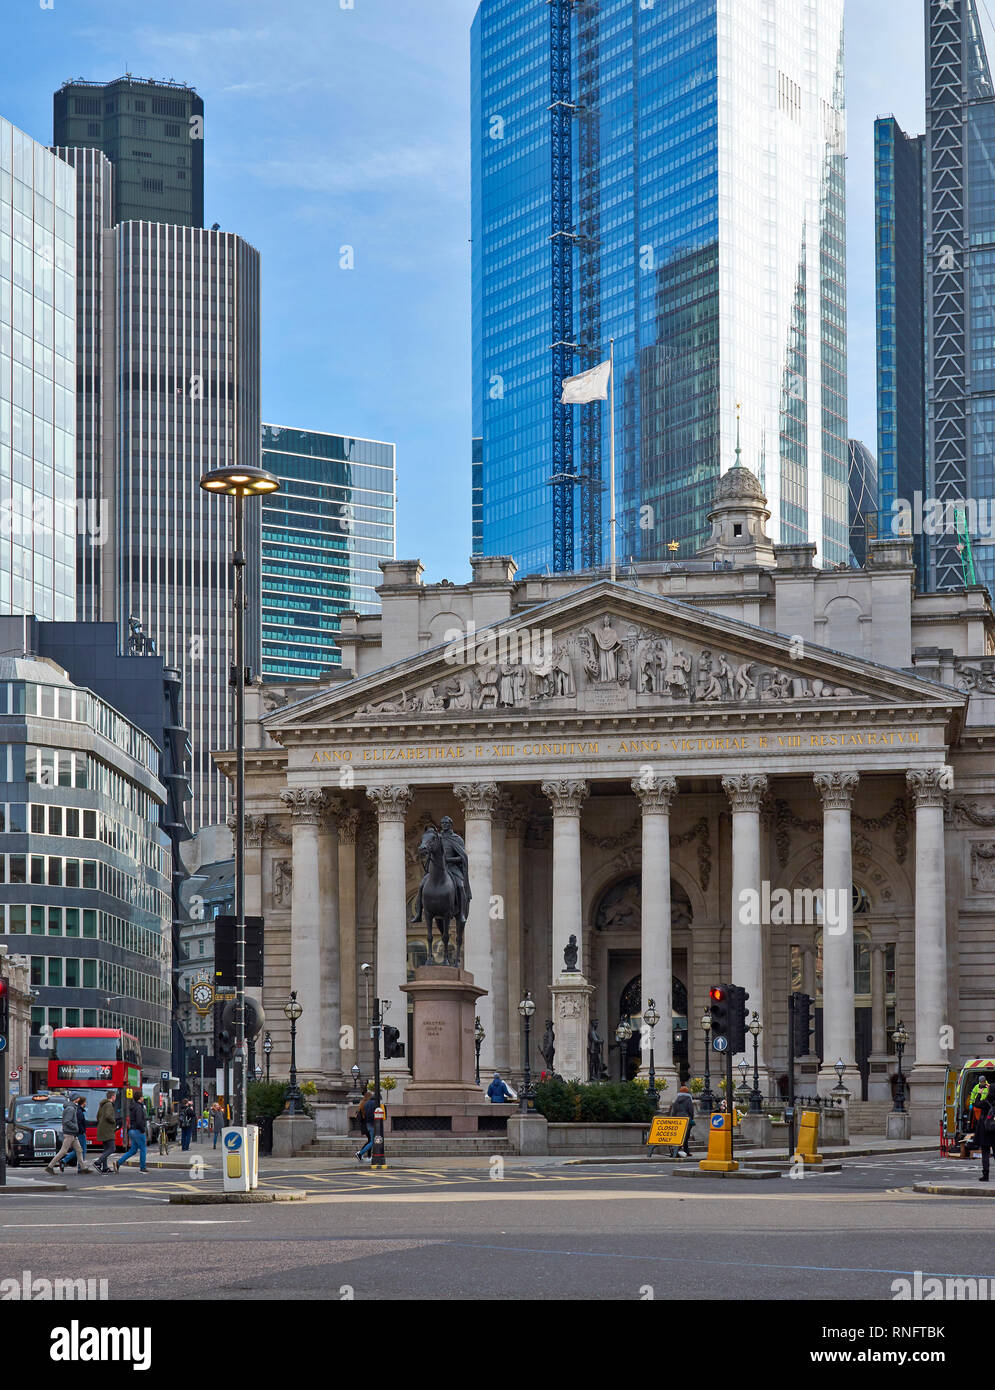 LONDON THE CITY OF LONDON ROYAL EXCHANGE AND EQUESTRIAN STATUE OF THE DUKE OF WELLINGTON Stock Photo